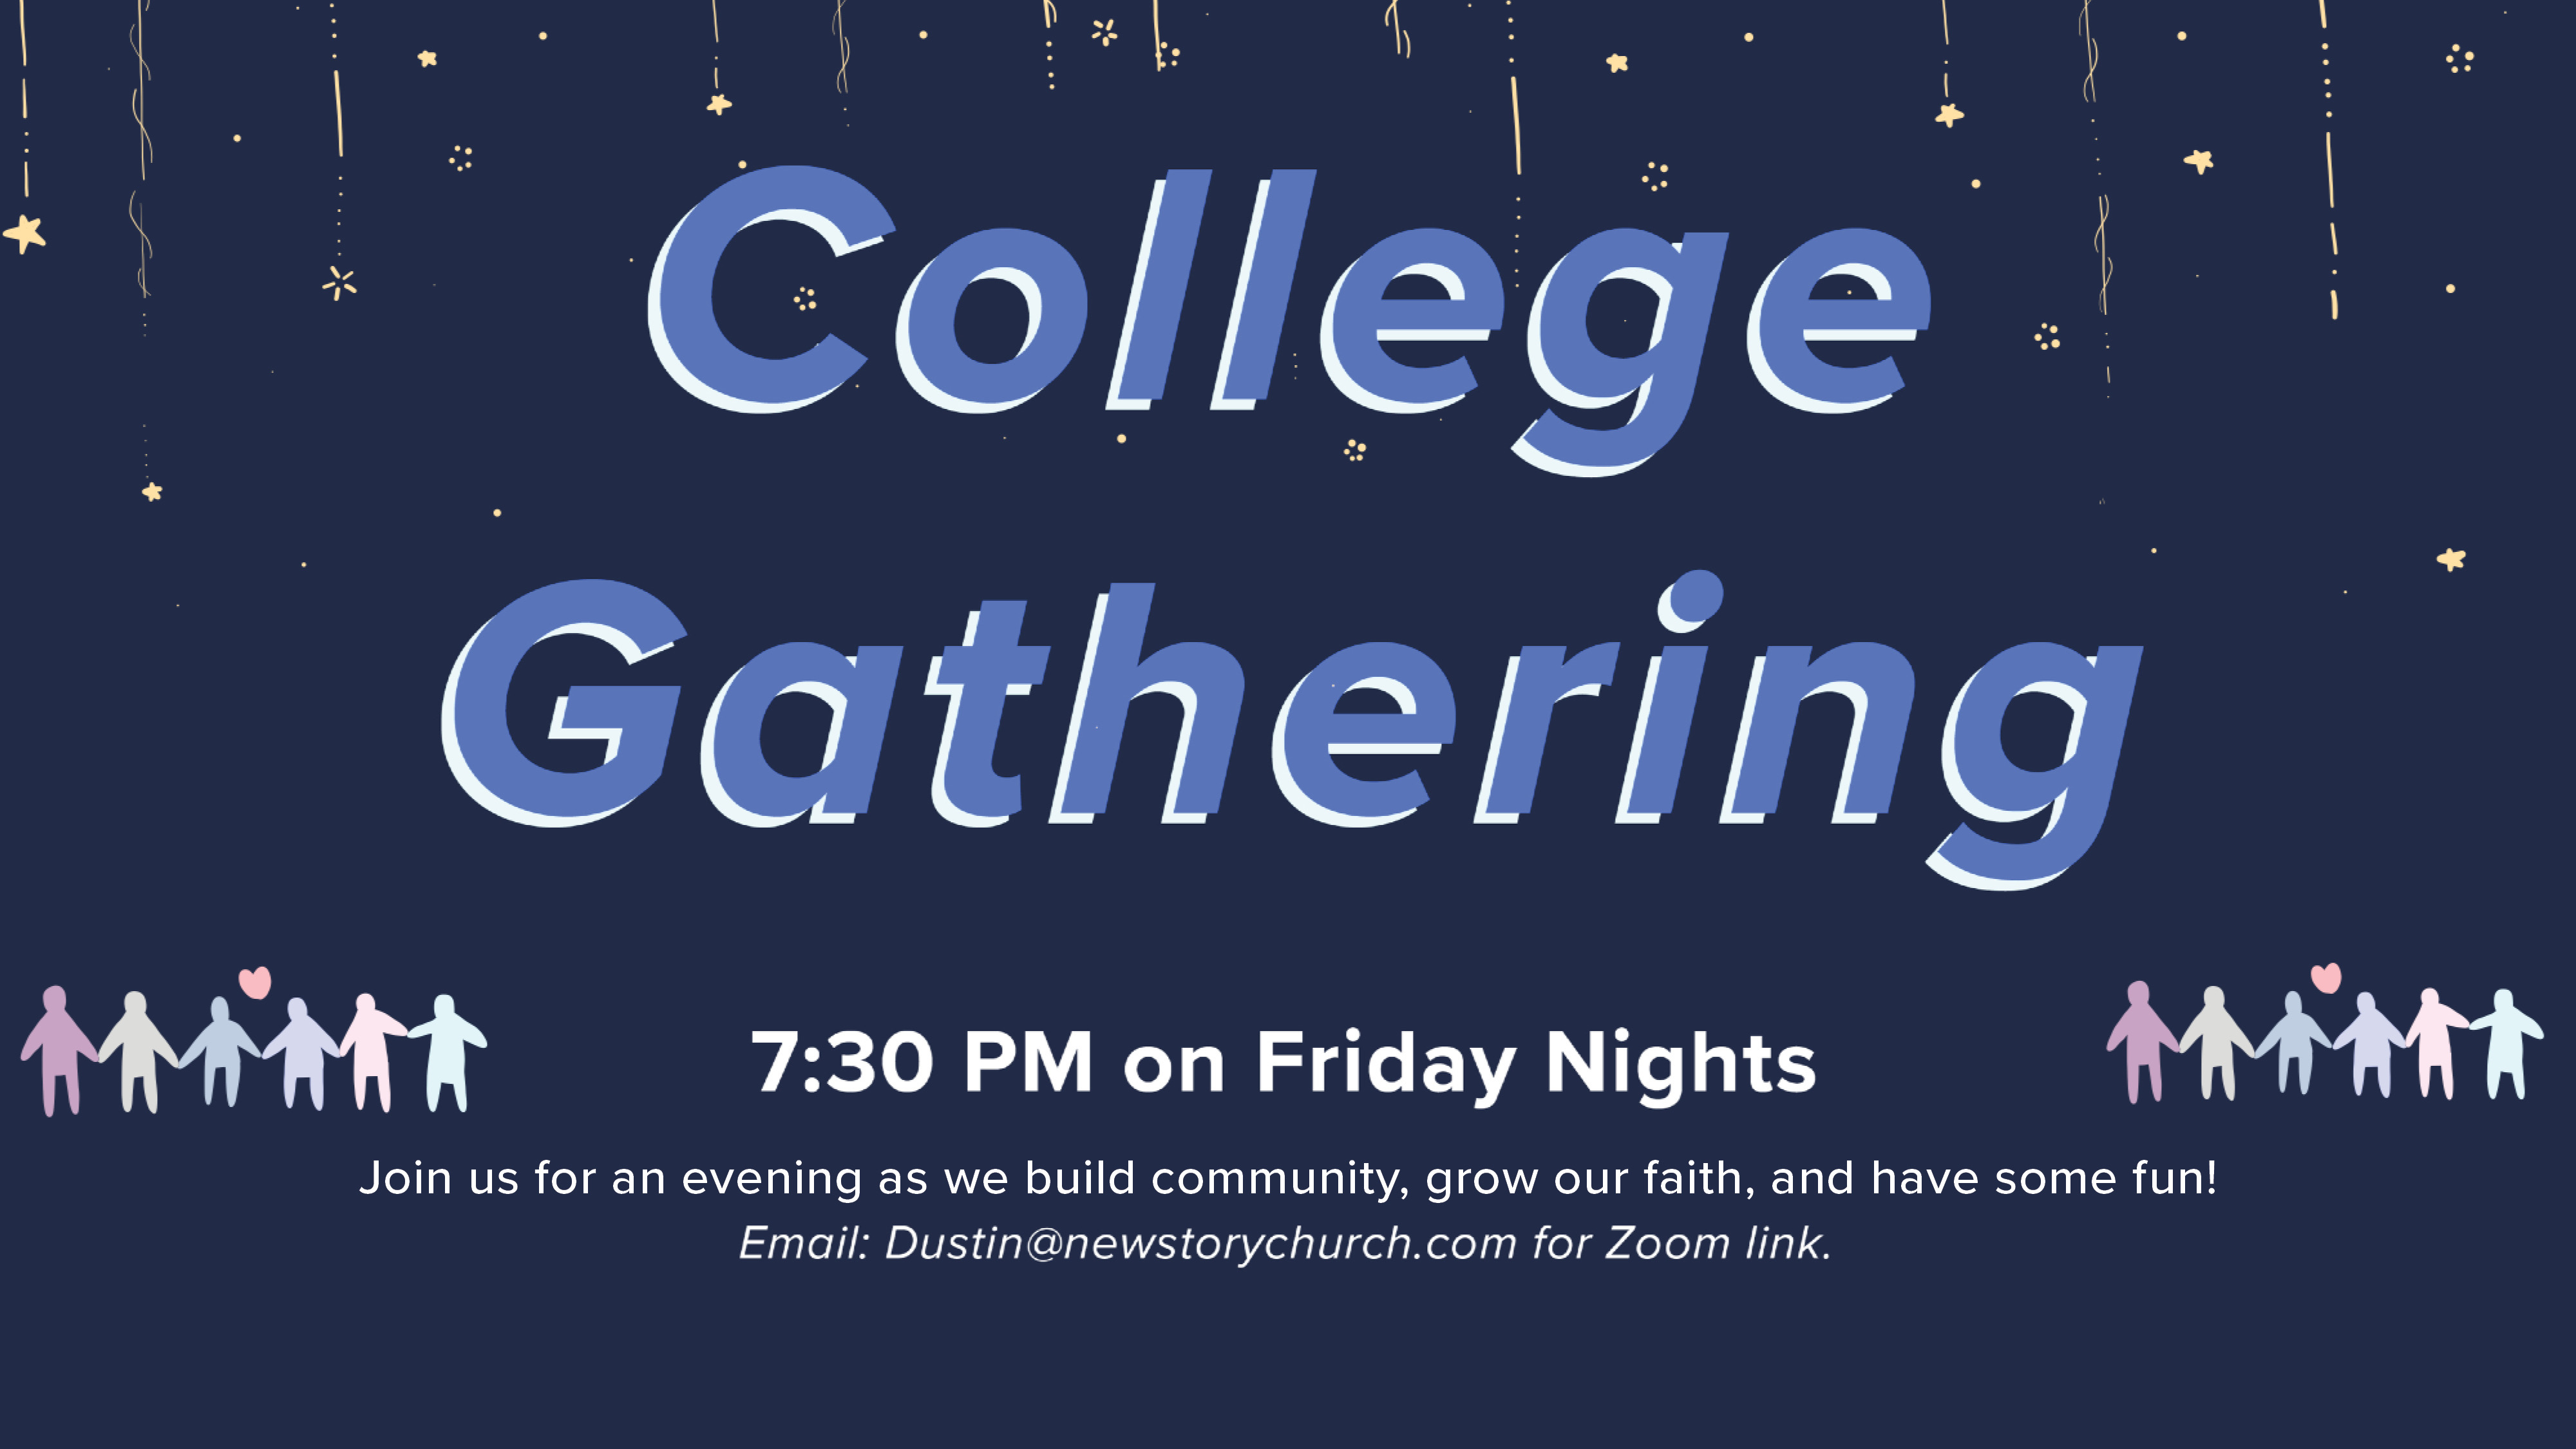 collegeGathering image